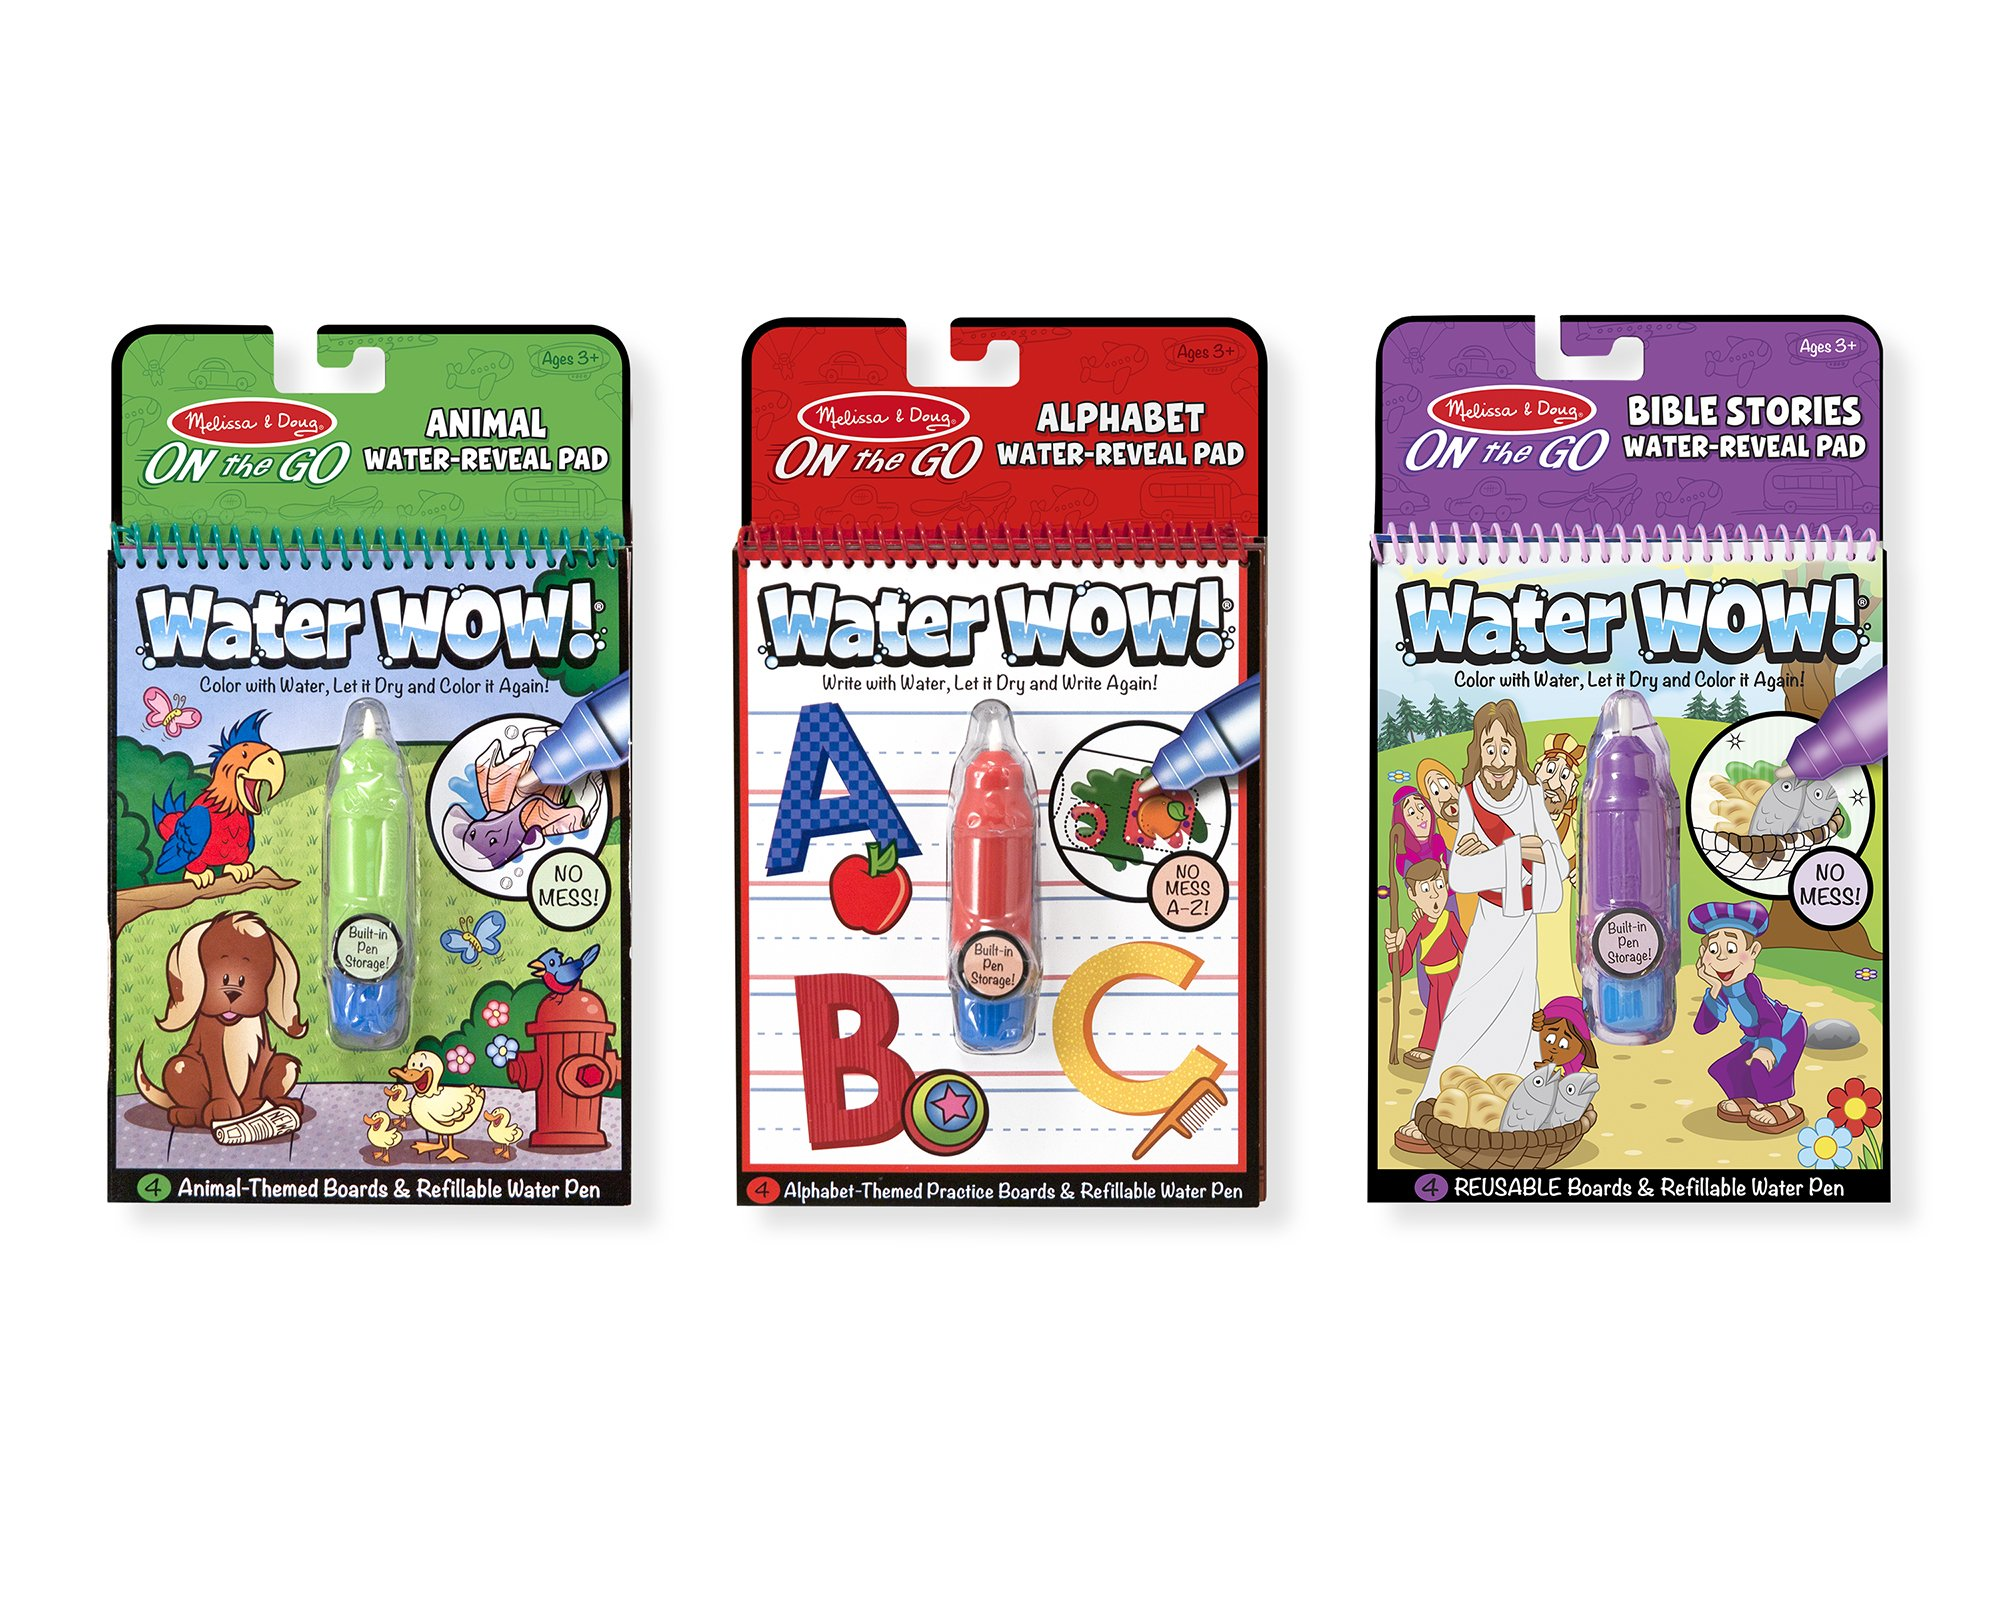 Melissa & Doug On the Go Water Wow! Reusable Water-Reveal Activity Pads,3-pk, Animals, Alphabet, Bible Stories